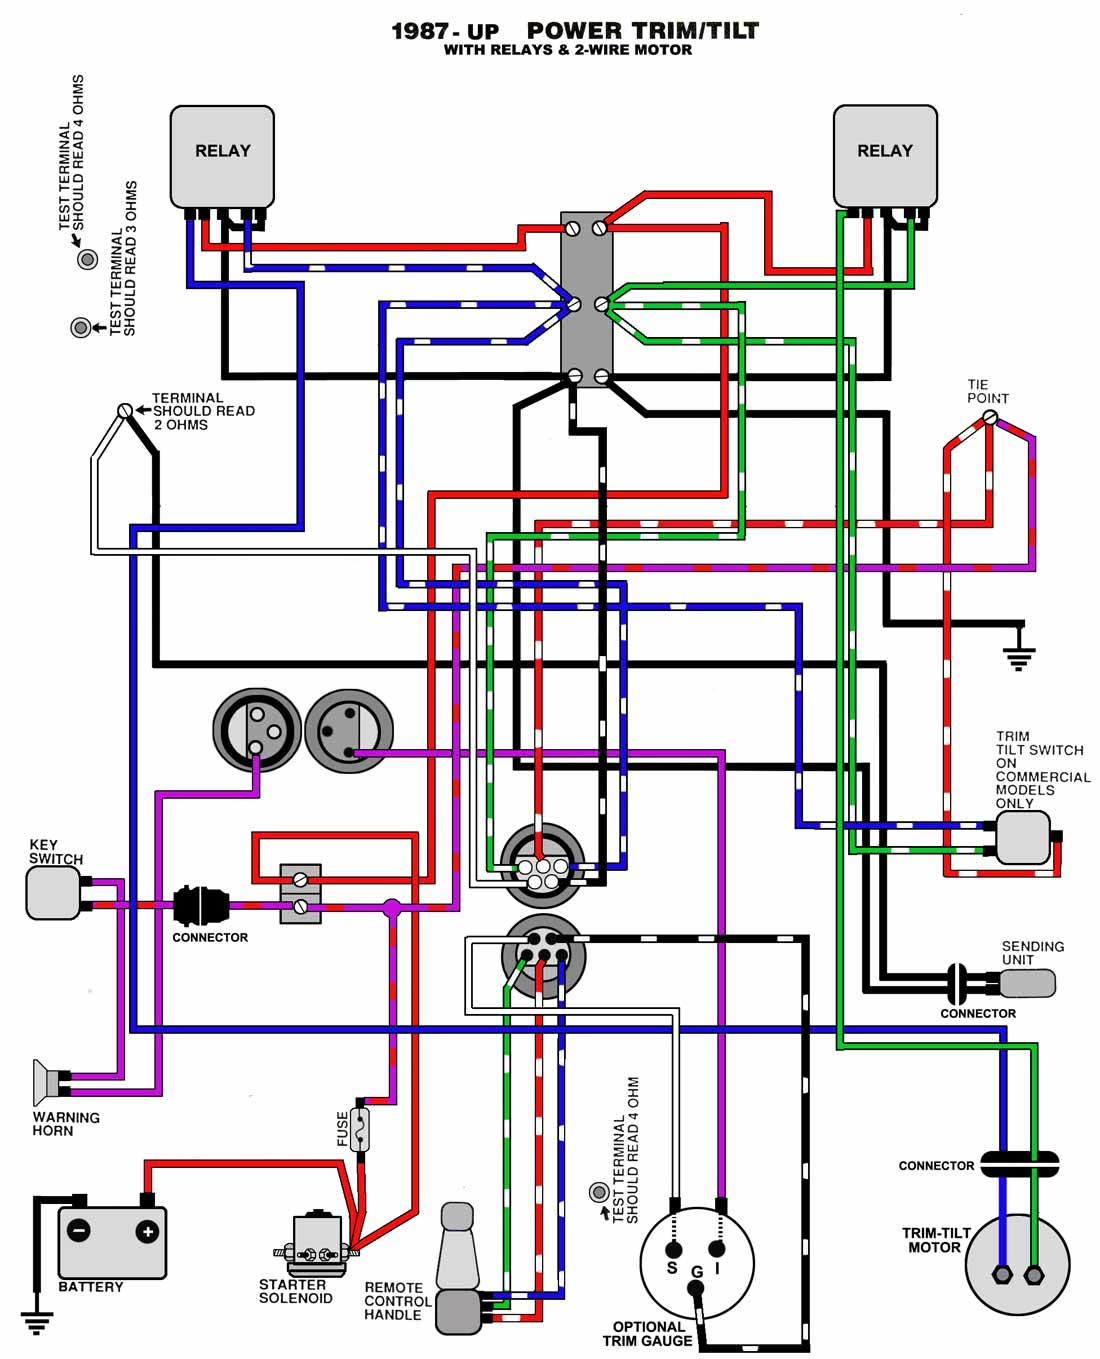 TnT_87_UP mastertech marine evinrude johnson outboard wiring diagrams wiring diagram for johnson outboard ignition switch at nearapp.co